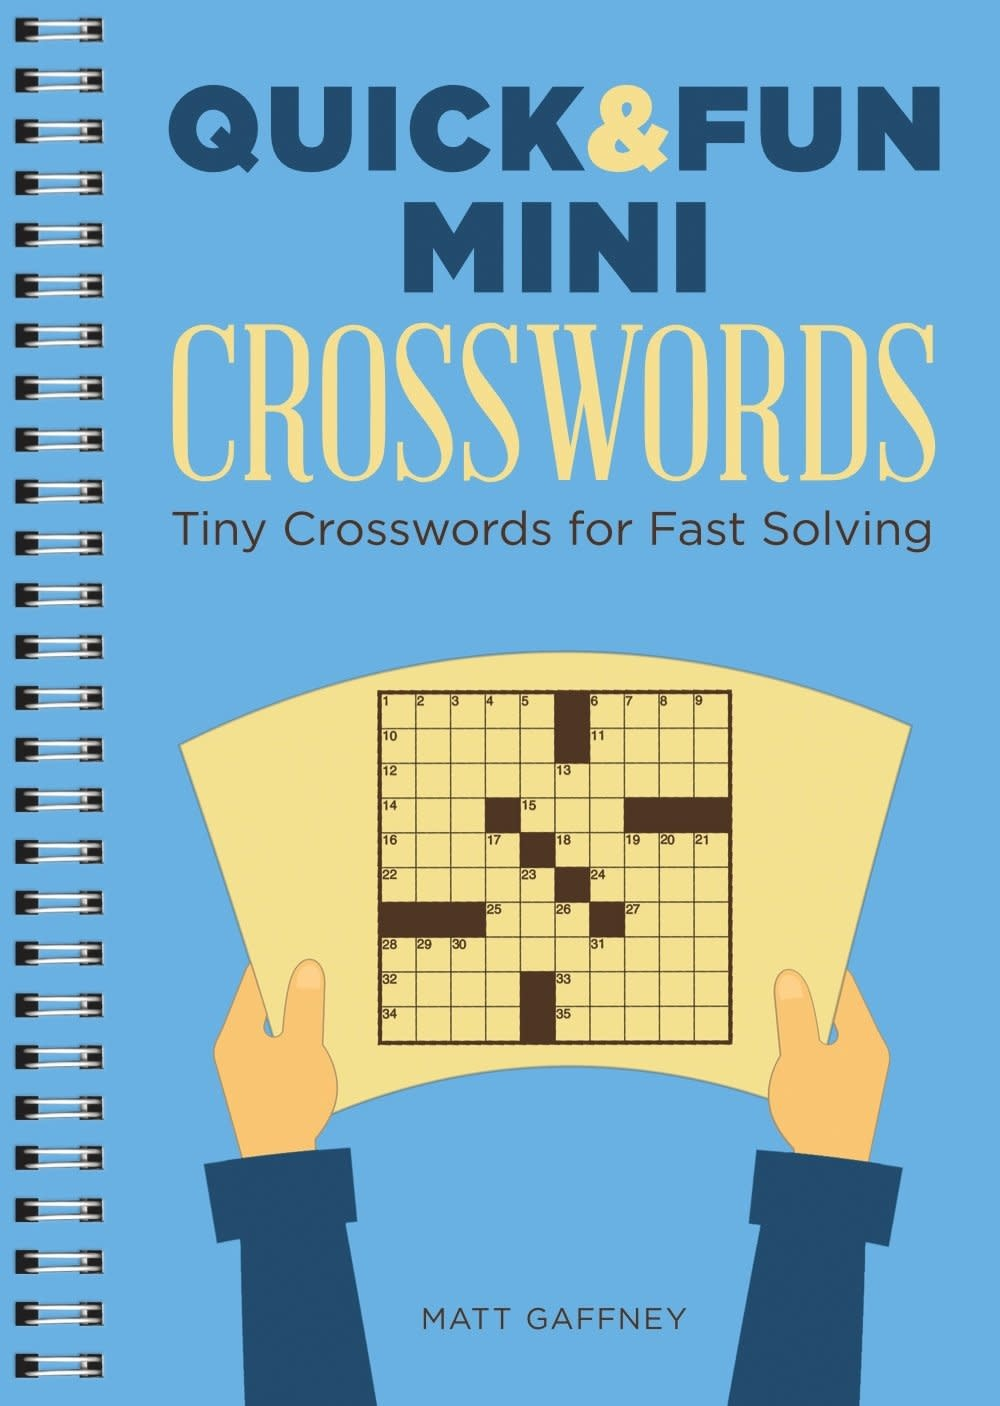 Quick & Fun Mini Crosswords Paperback Book